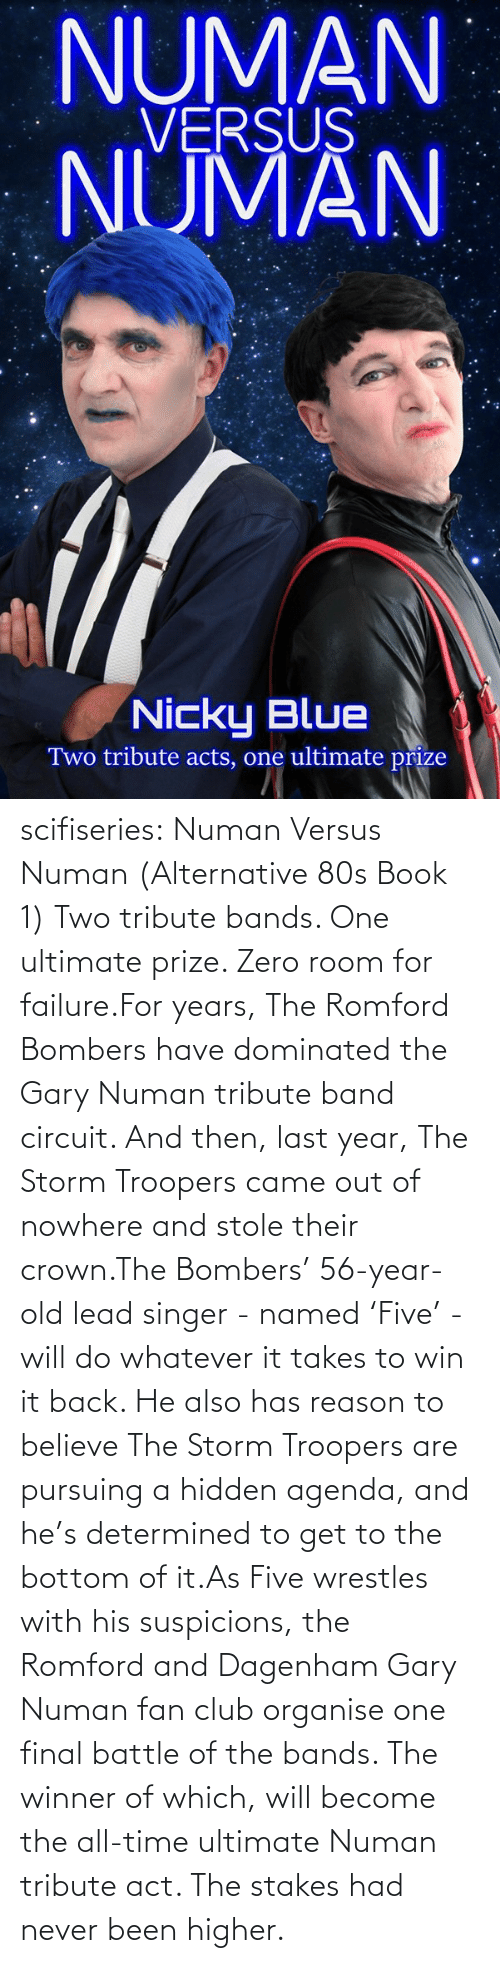 80s: NUMAN  VERSUS  NUMAN  Nicky Blue  Two tribute acts, one ultimate prize scifiseries:  Numan Versus Numan (Alternative 80s Book 1) Two tribute bands. One ultimate prize. Zero room for failure.For  years, The Romford Bombers have dominated the Gary Numan tribute band  circuit. And then, last year, The Storm Troopers came out of nowhere and  stole their crown.The Bombers' 56-year-old lead singer - named  'Five' - will do whatever it takes to win it back. He also has reason to  believe The Storm Troopers are pursuing a hidden agenda, and he's  determined to get to the bottom of it.As Five wrestles with his  suspicions, the Romford and Dagenham Gary Numan fan club organise one  final battle of the bands. The winner of which, will become the all-time  ultimate Numan tribute act. The stakes had never been higher.